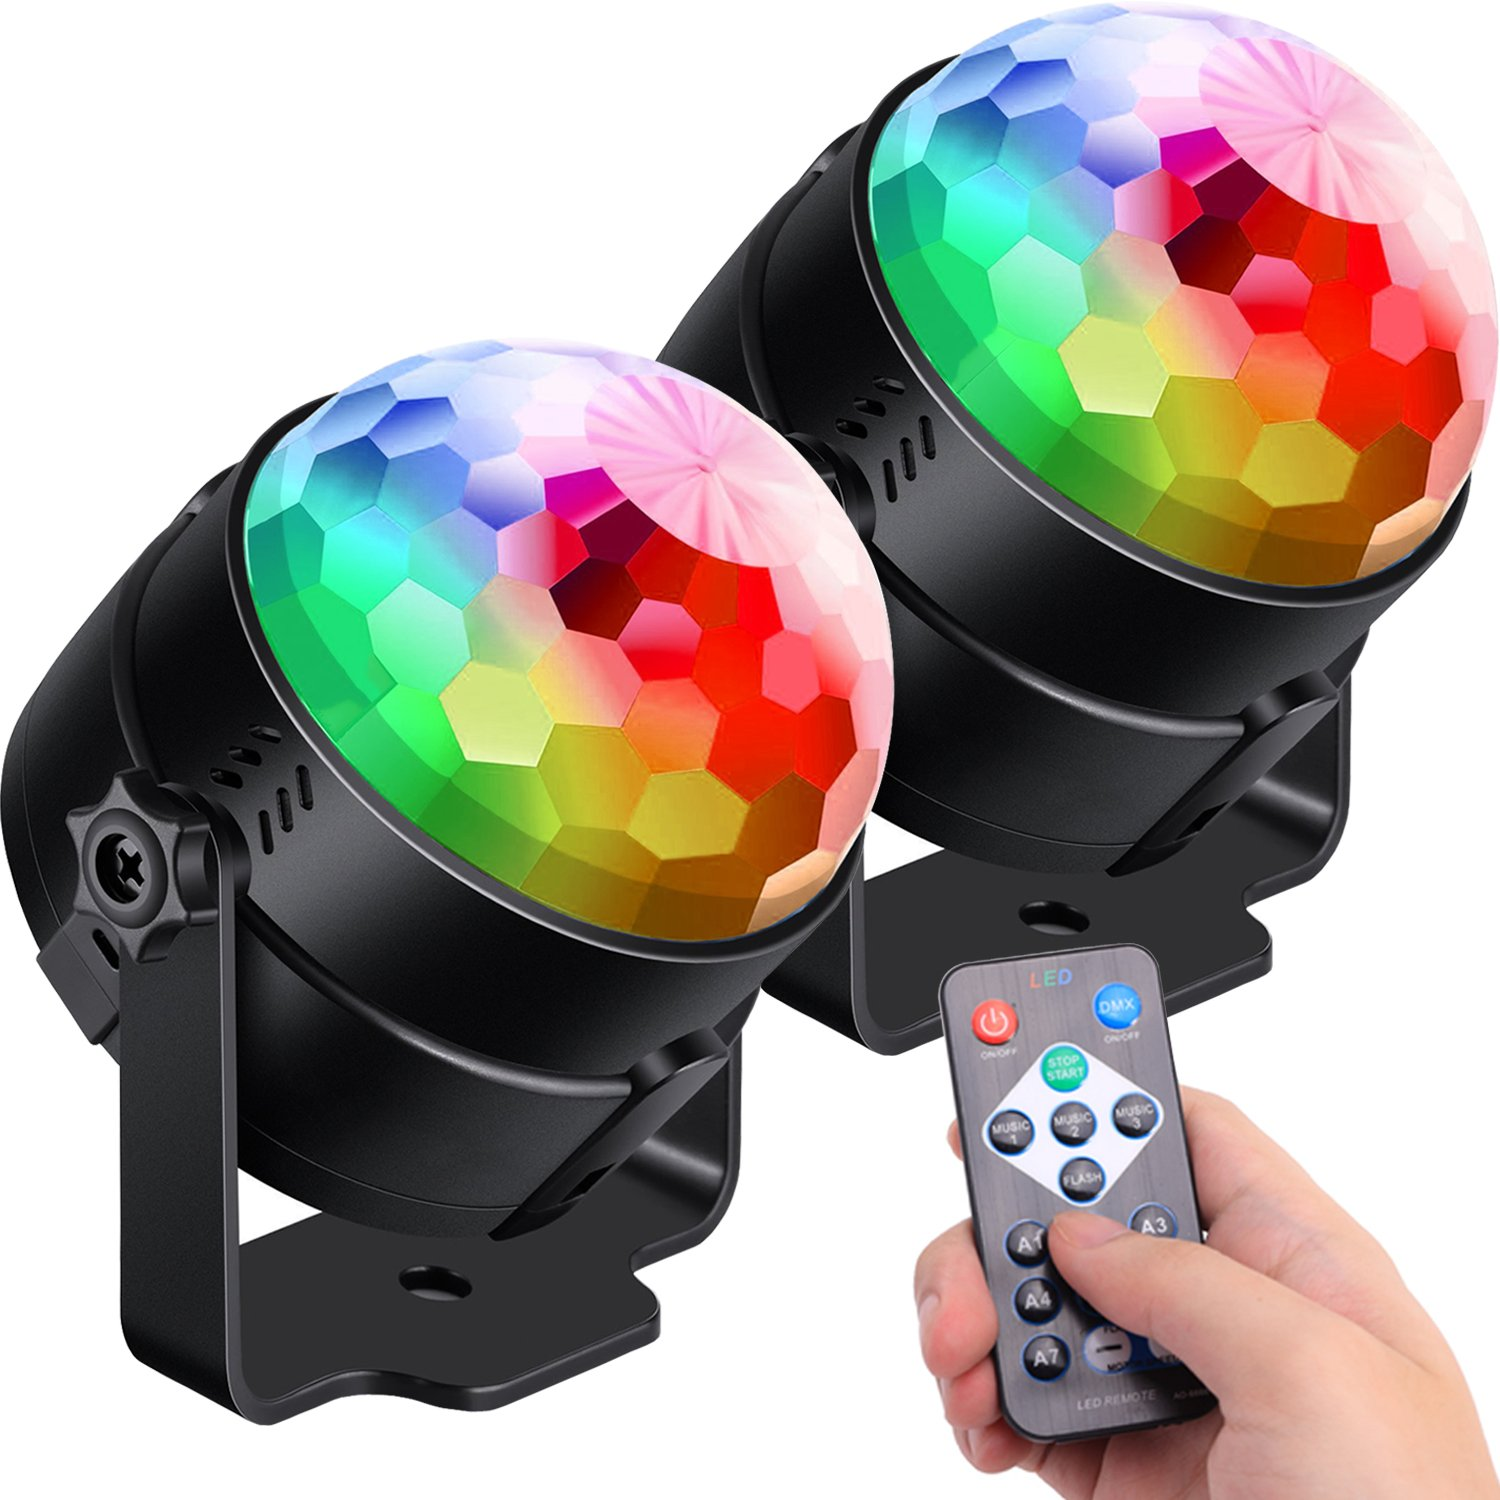 Wanzi2 New 20W RGBW 128LED Party Light,Auto Pattern-Changing /& Voice Control Activated Stage Lighting for DJ,Parties,Clubs,Bars,Etc